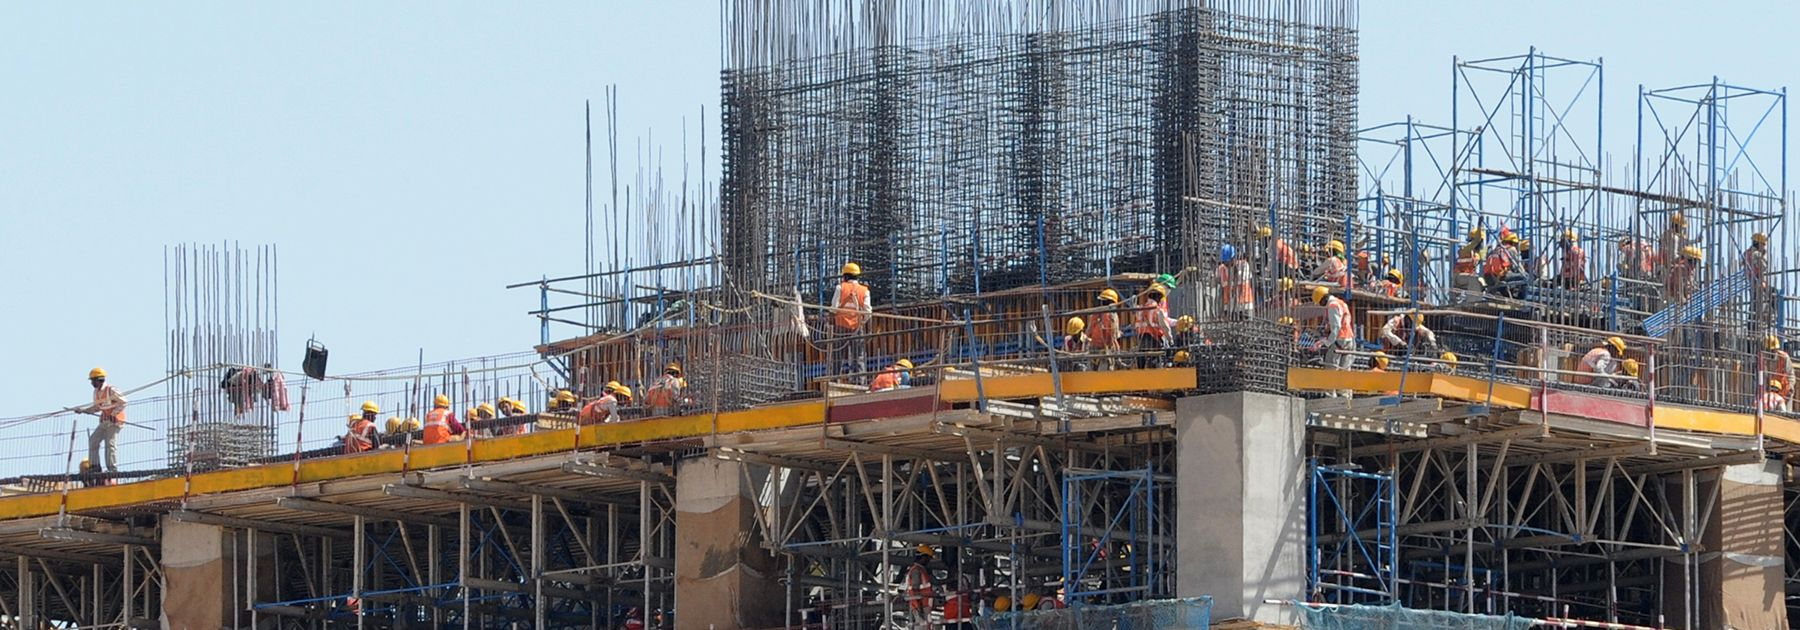 Under construction residential buildings rise into the skyline of Mumbai. (PUNIT PARANJPE/AFP/Getty Images)